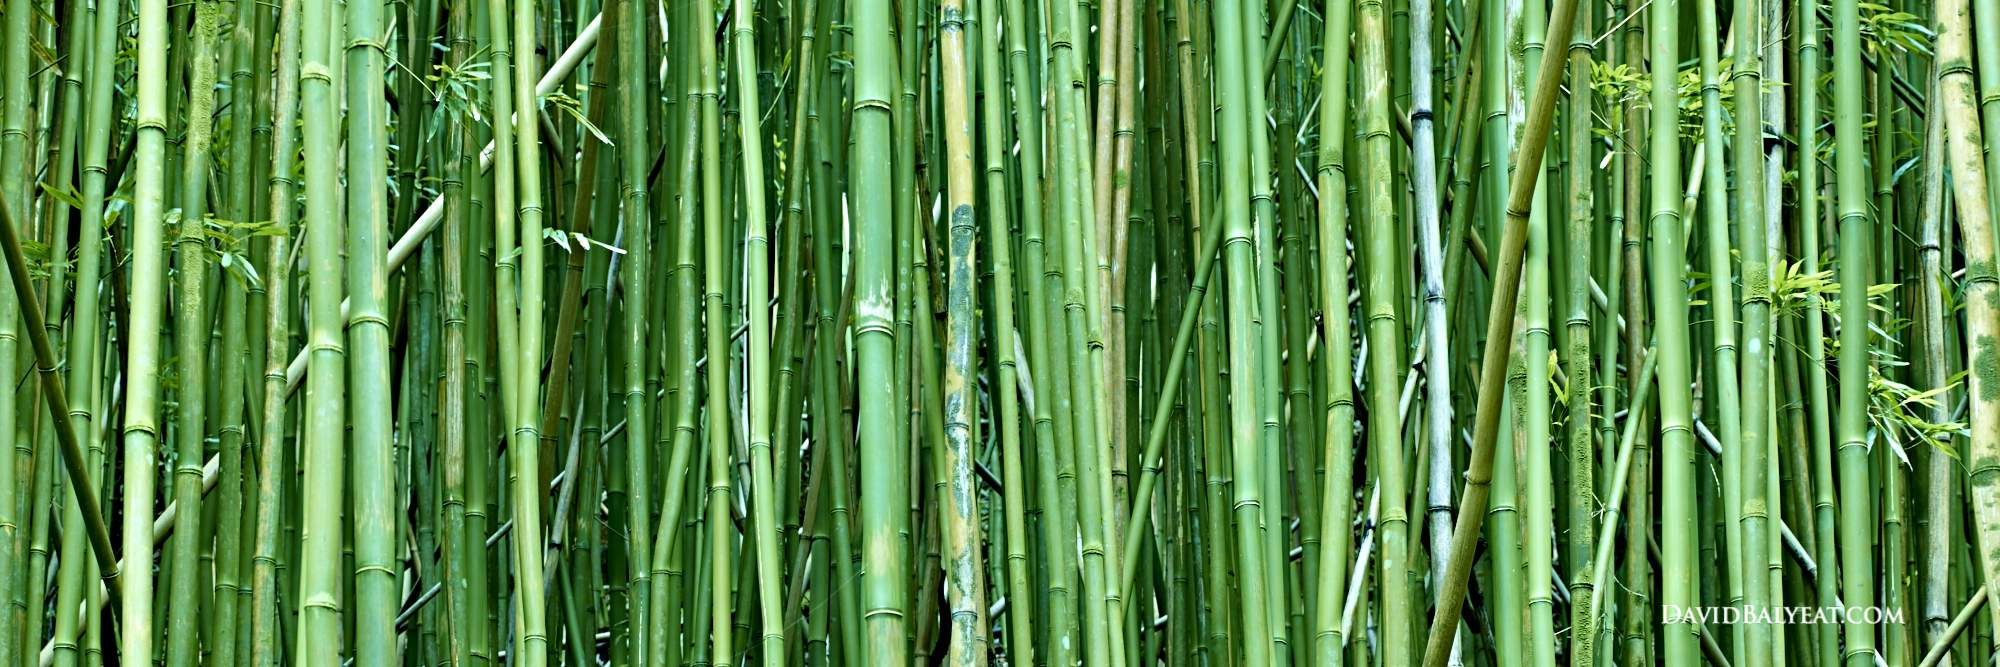 bamboo-grove-hawaii-panoramic-good-fortune-high-definition-hd